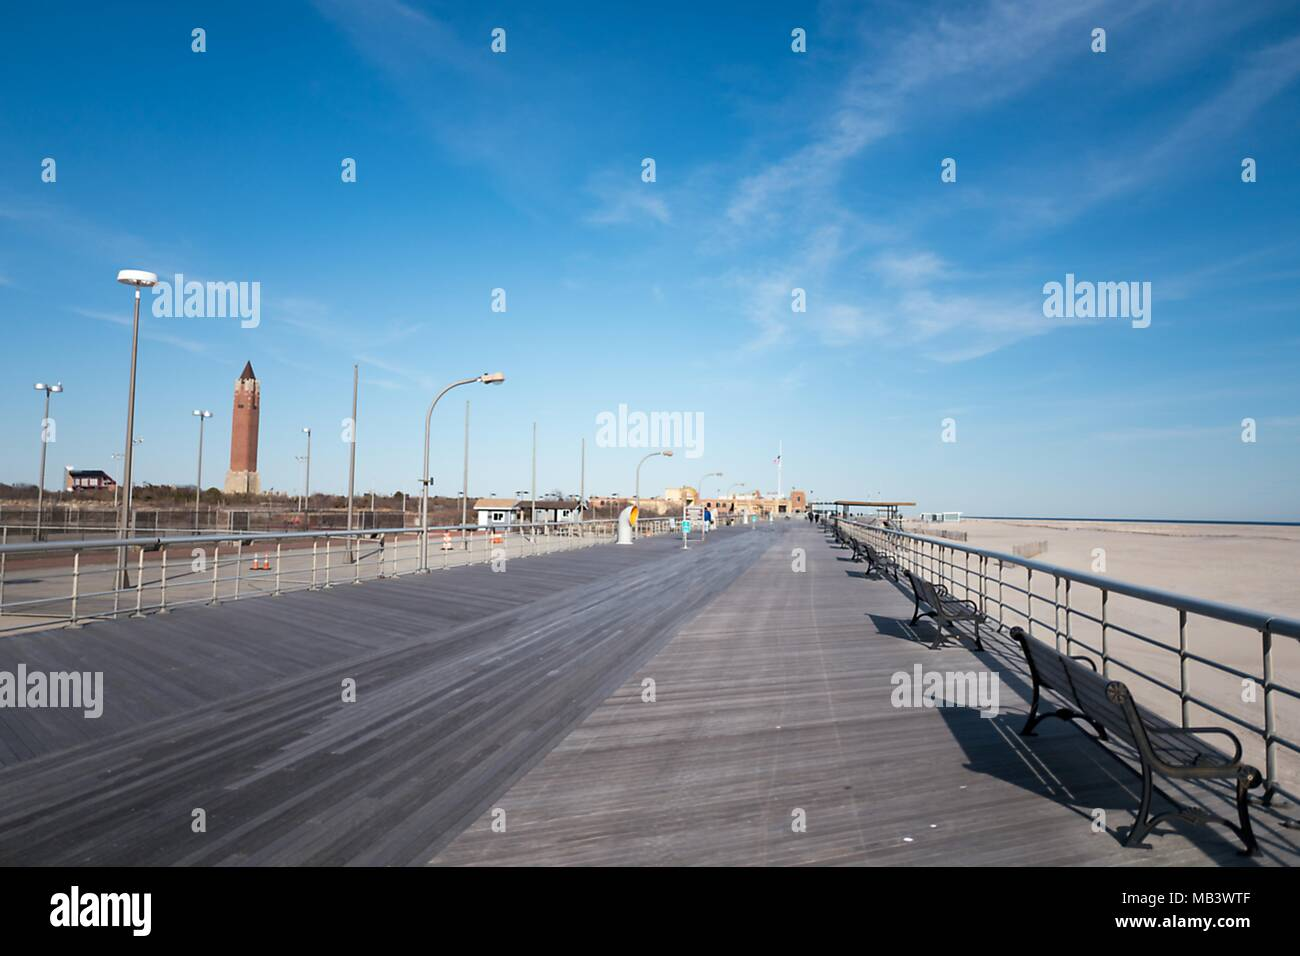 Page 3 Wantagh High Resolution Stock Photography And Images Alamy